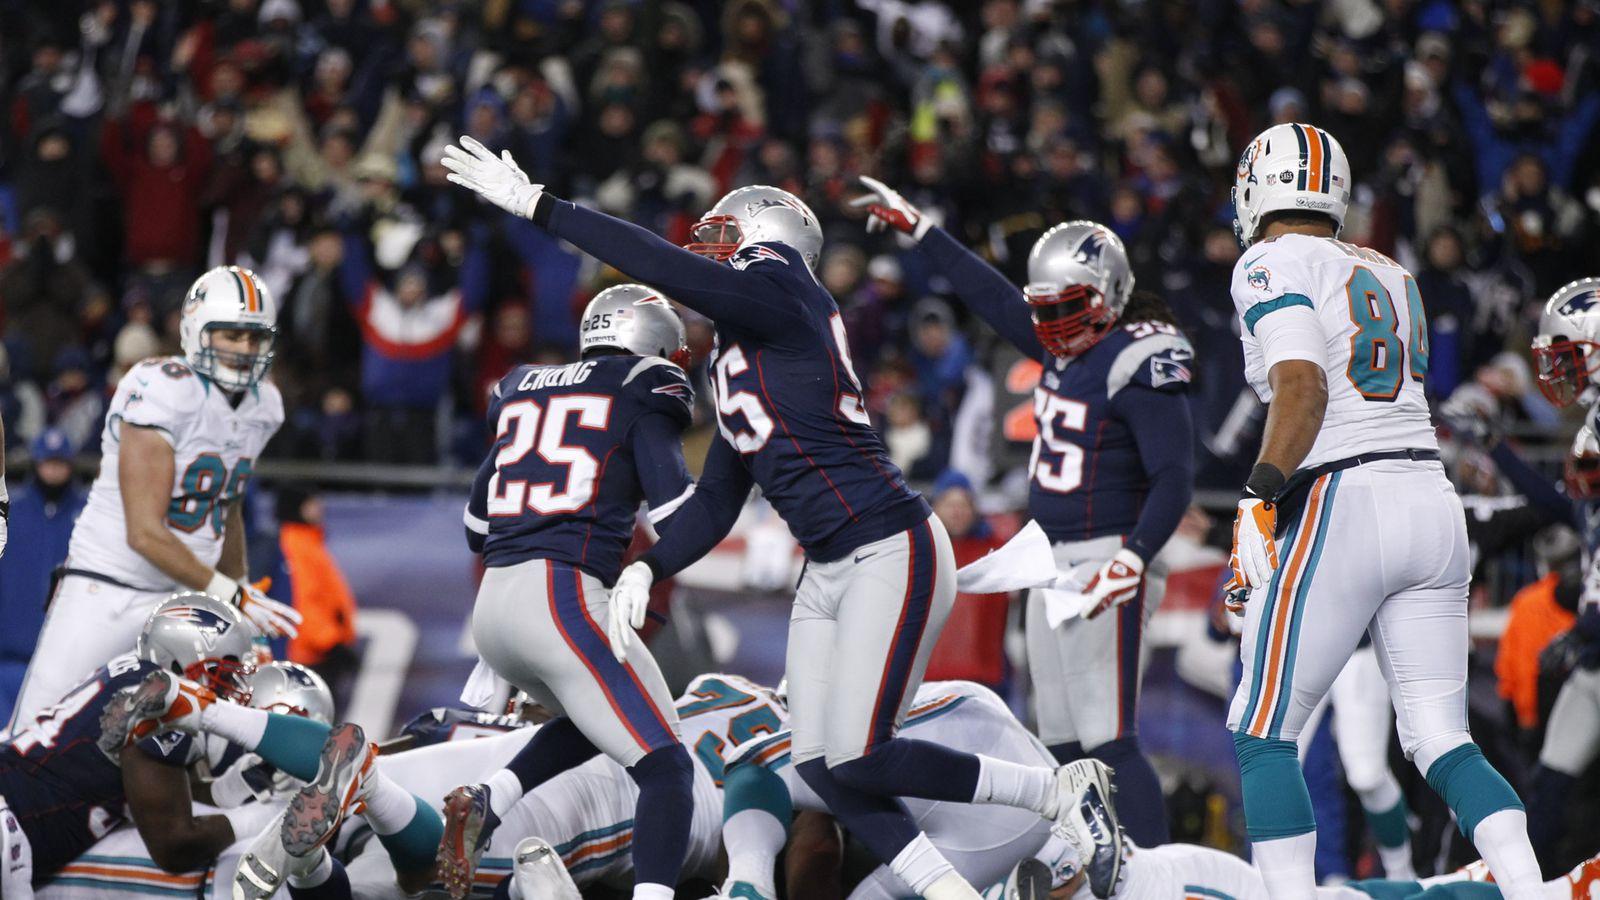 The 2011 New England Patriots season was the 42nd season for the team in the National Football League and 52nd season overall The Patriots finished the regular